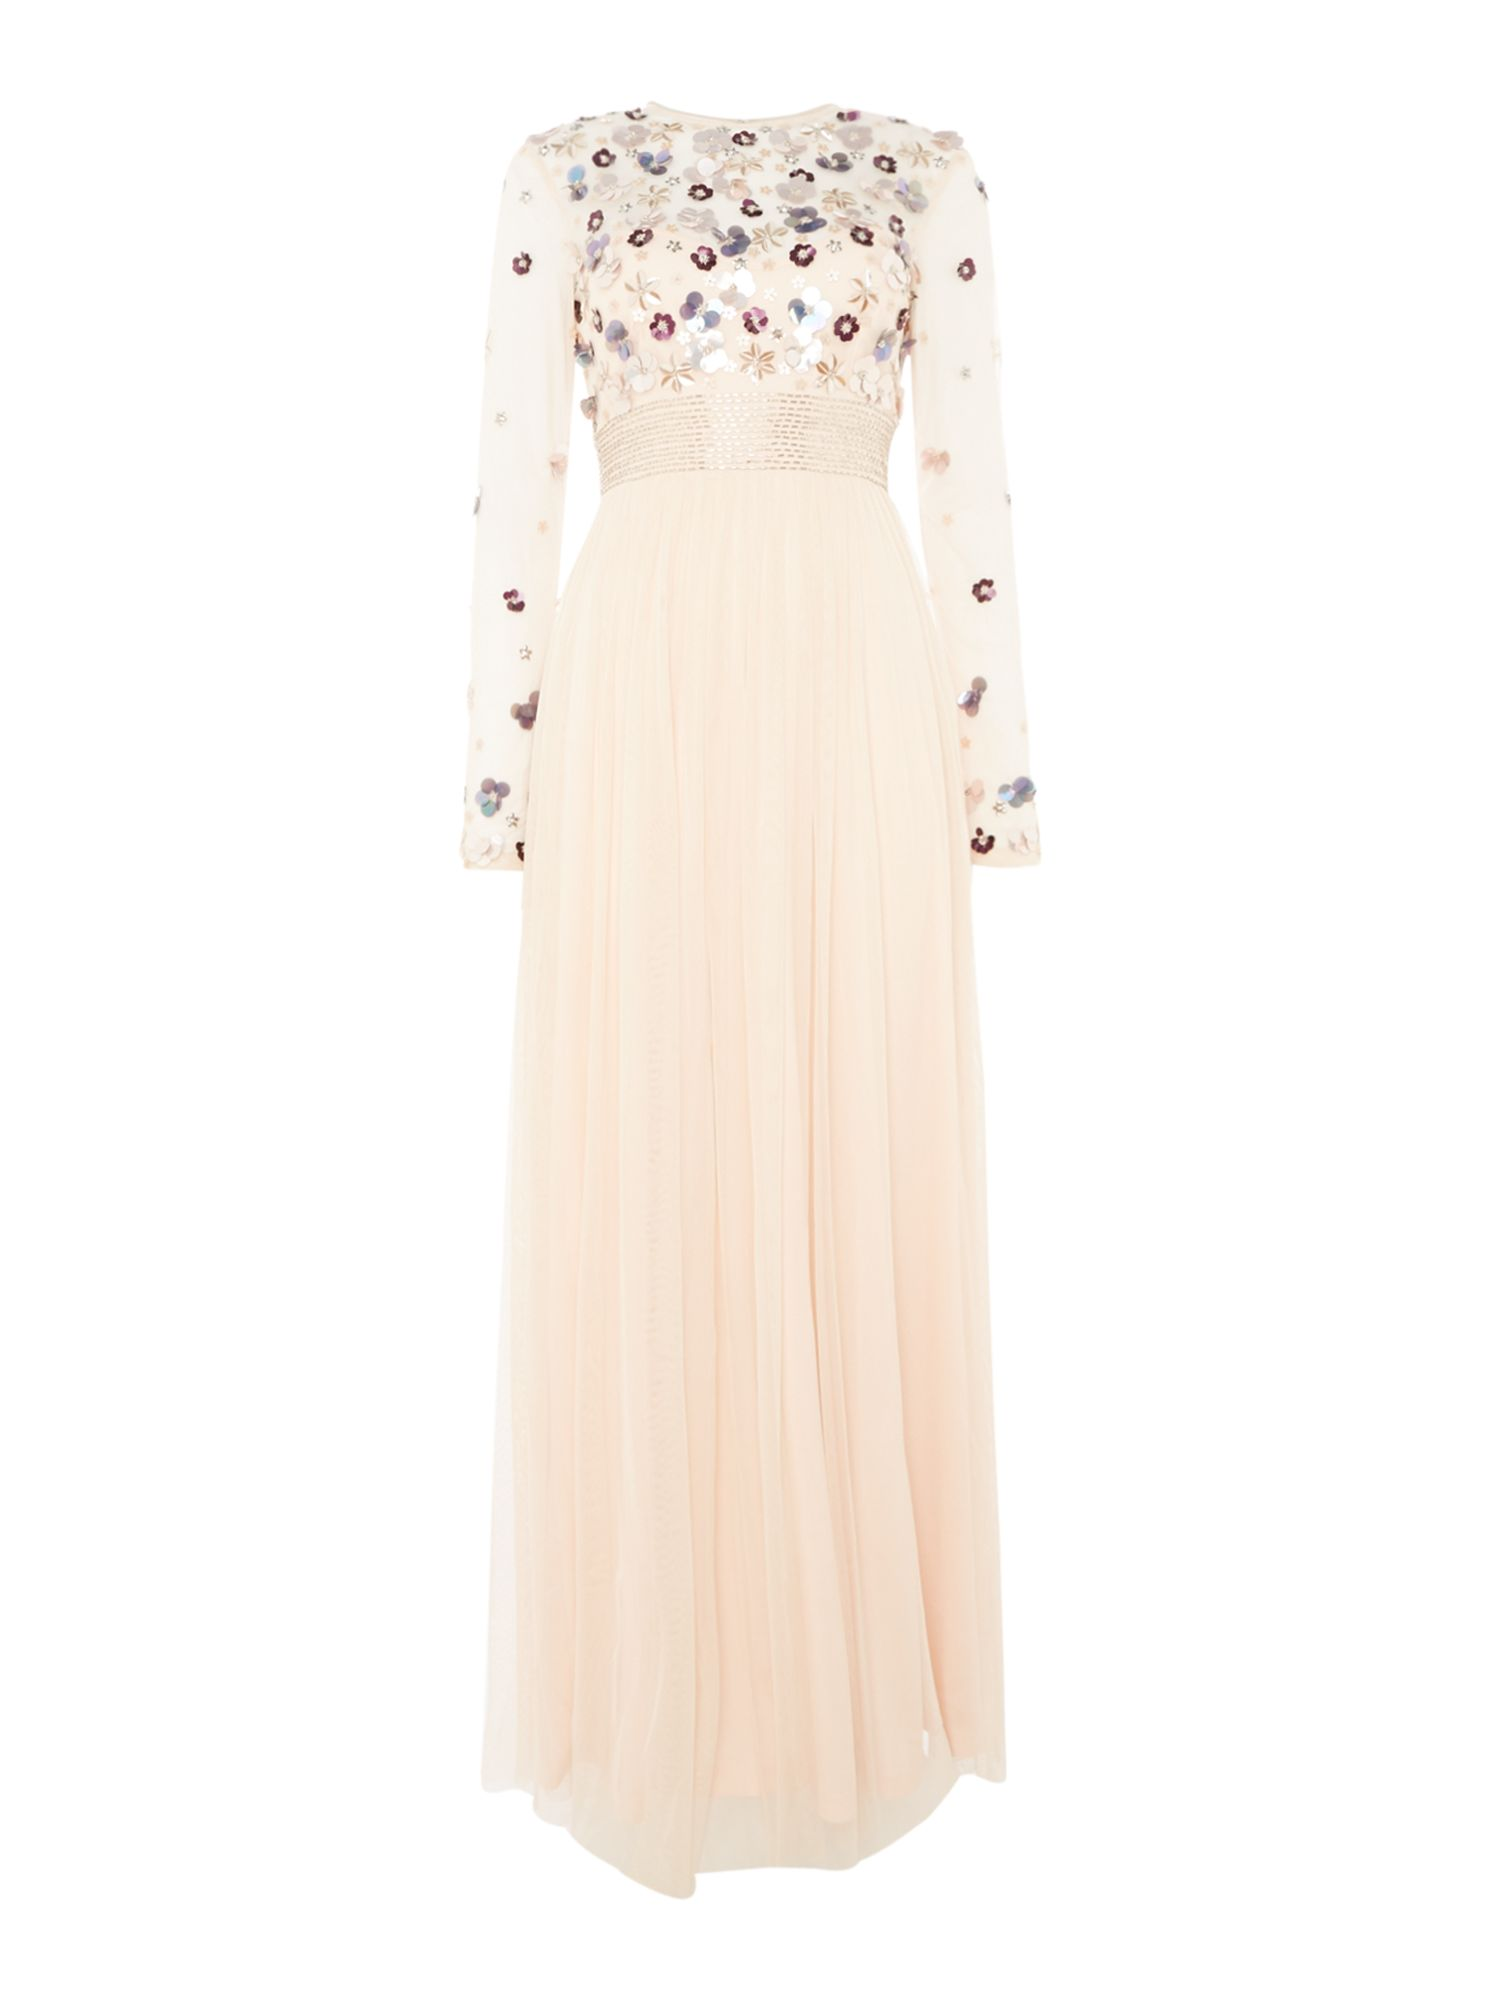 Lace and Beads Long sleeve floral top gown, Nude